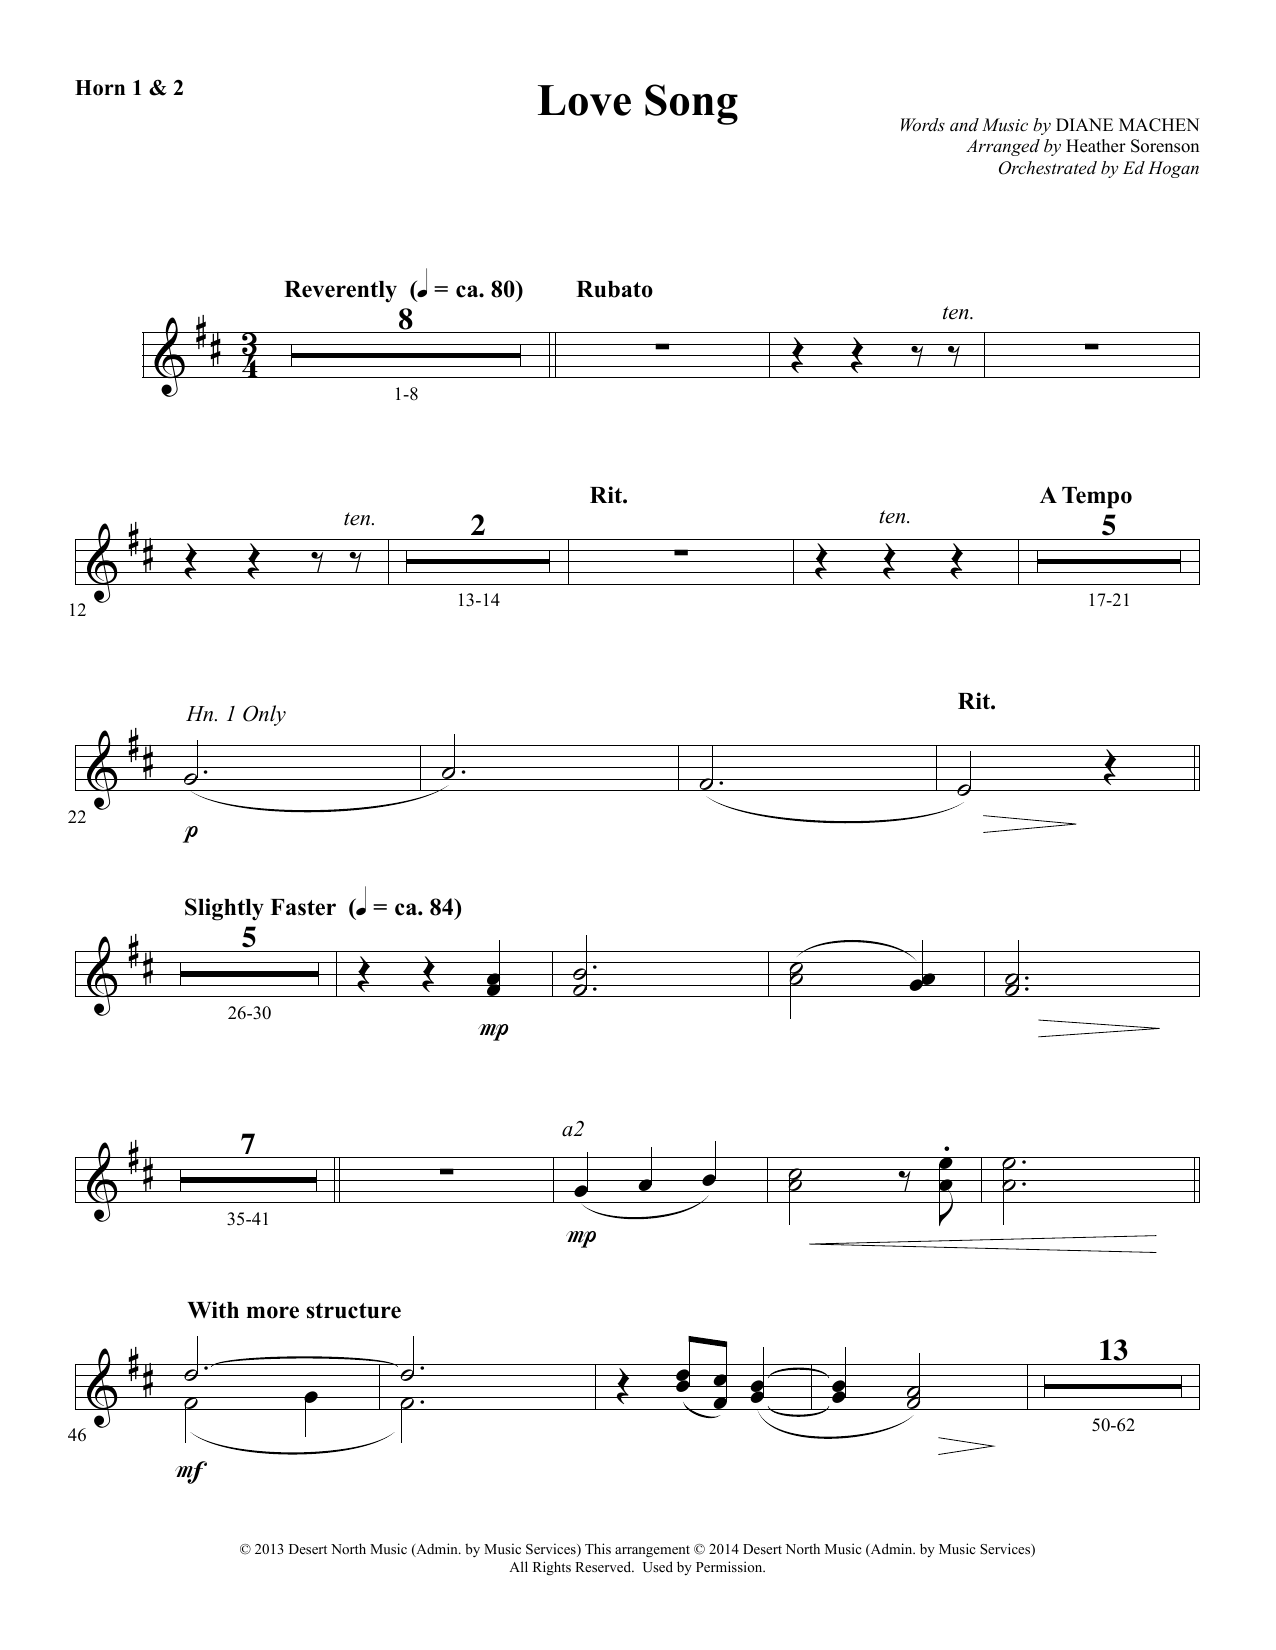 Heather Sorenson Love Song - F Horn 1 & 2 sheet music notes and chords. Download Printable PDF.